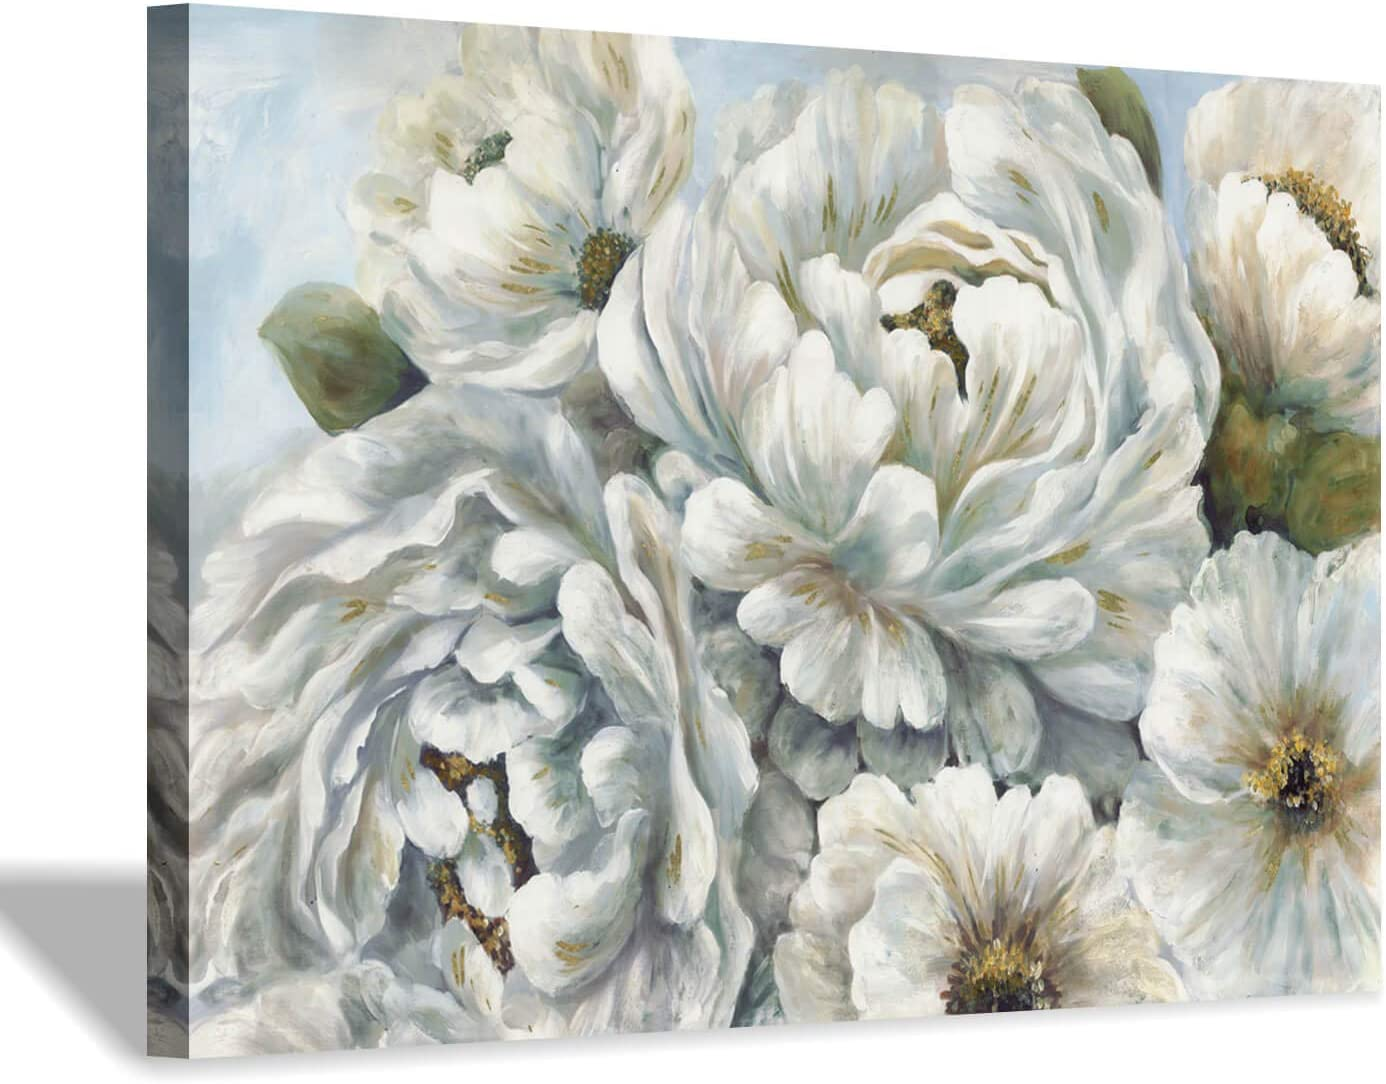 Hardy Gallery Peony Flowers Painting Art: Max 50% OFF Austin Mall Wall Art White Blossom